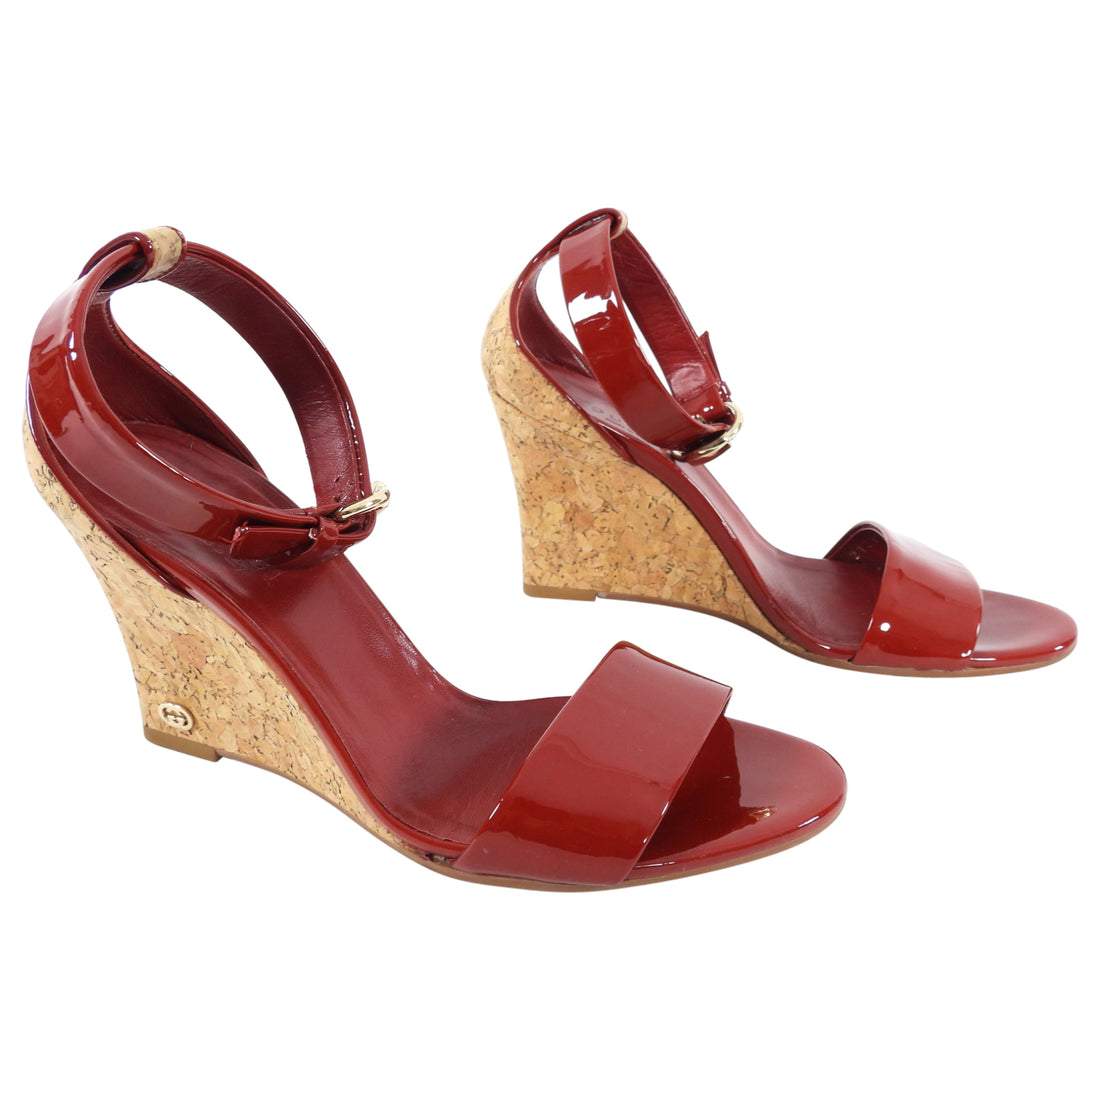 Gucci Red Patent Leather and Cork Wedge Sandals - 5.5